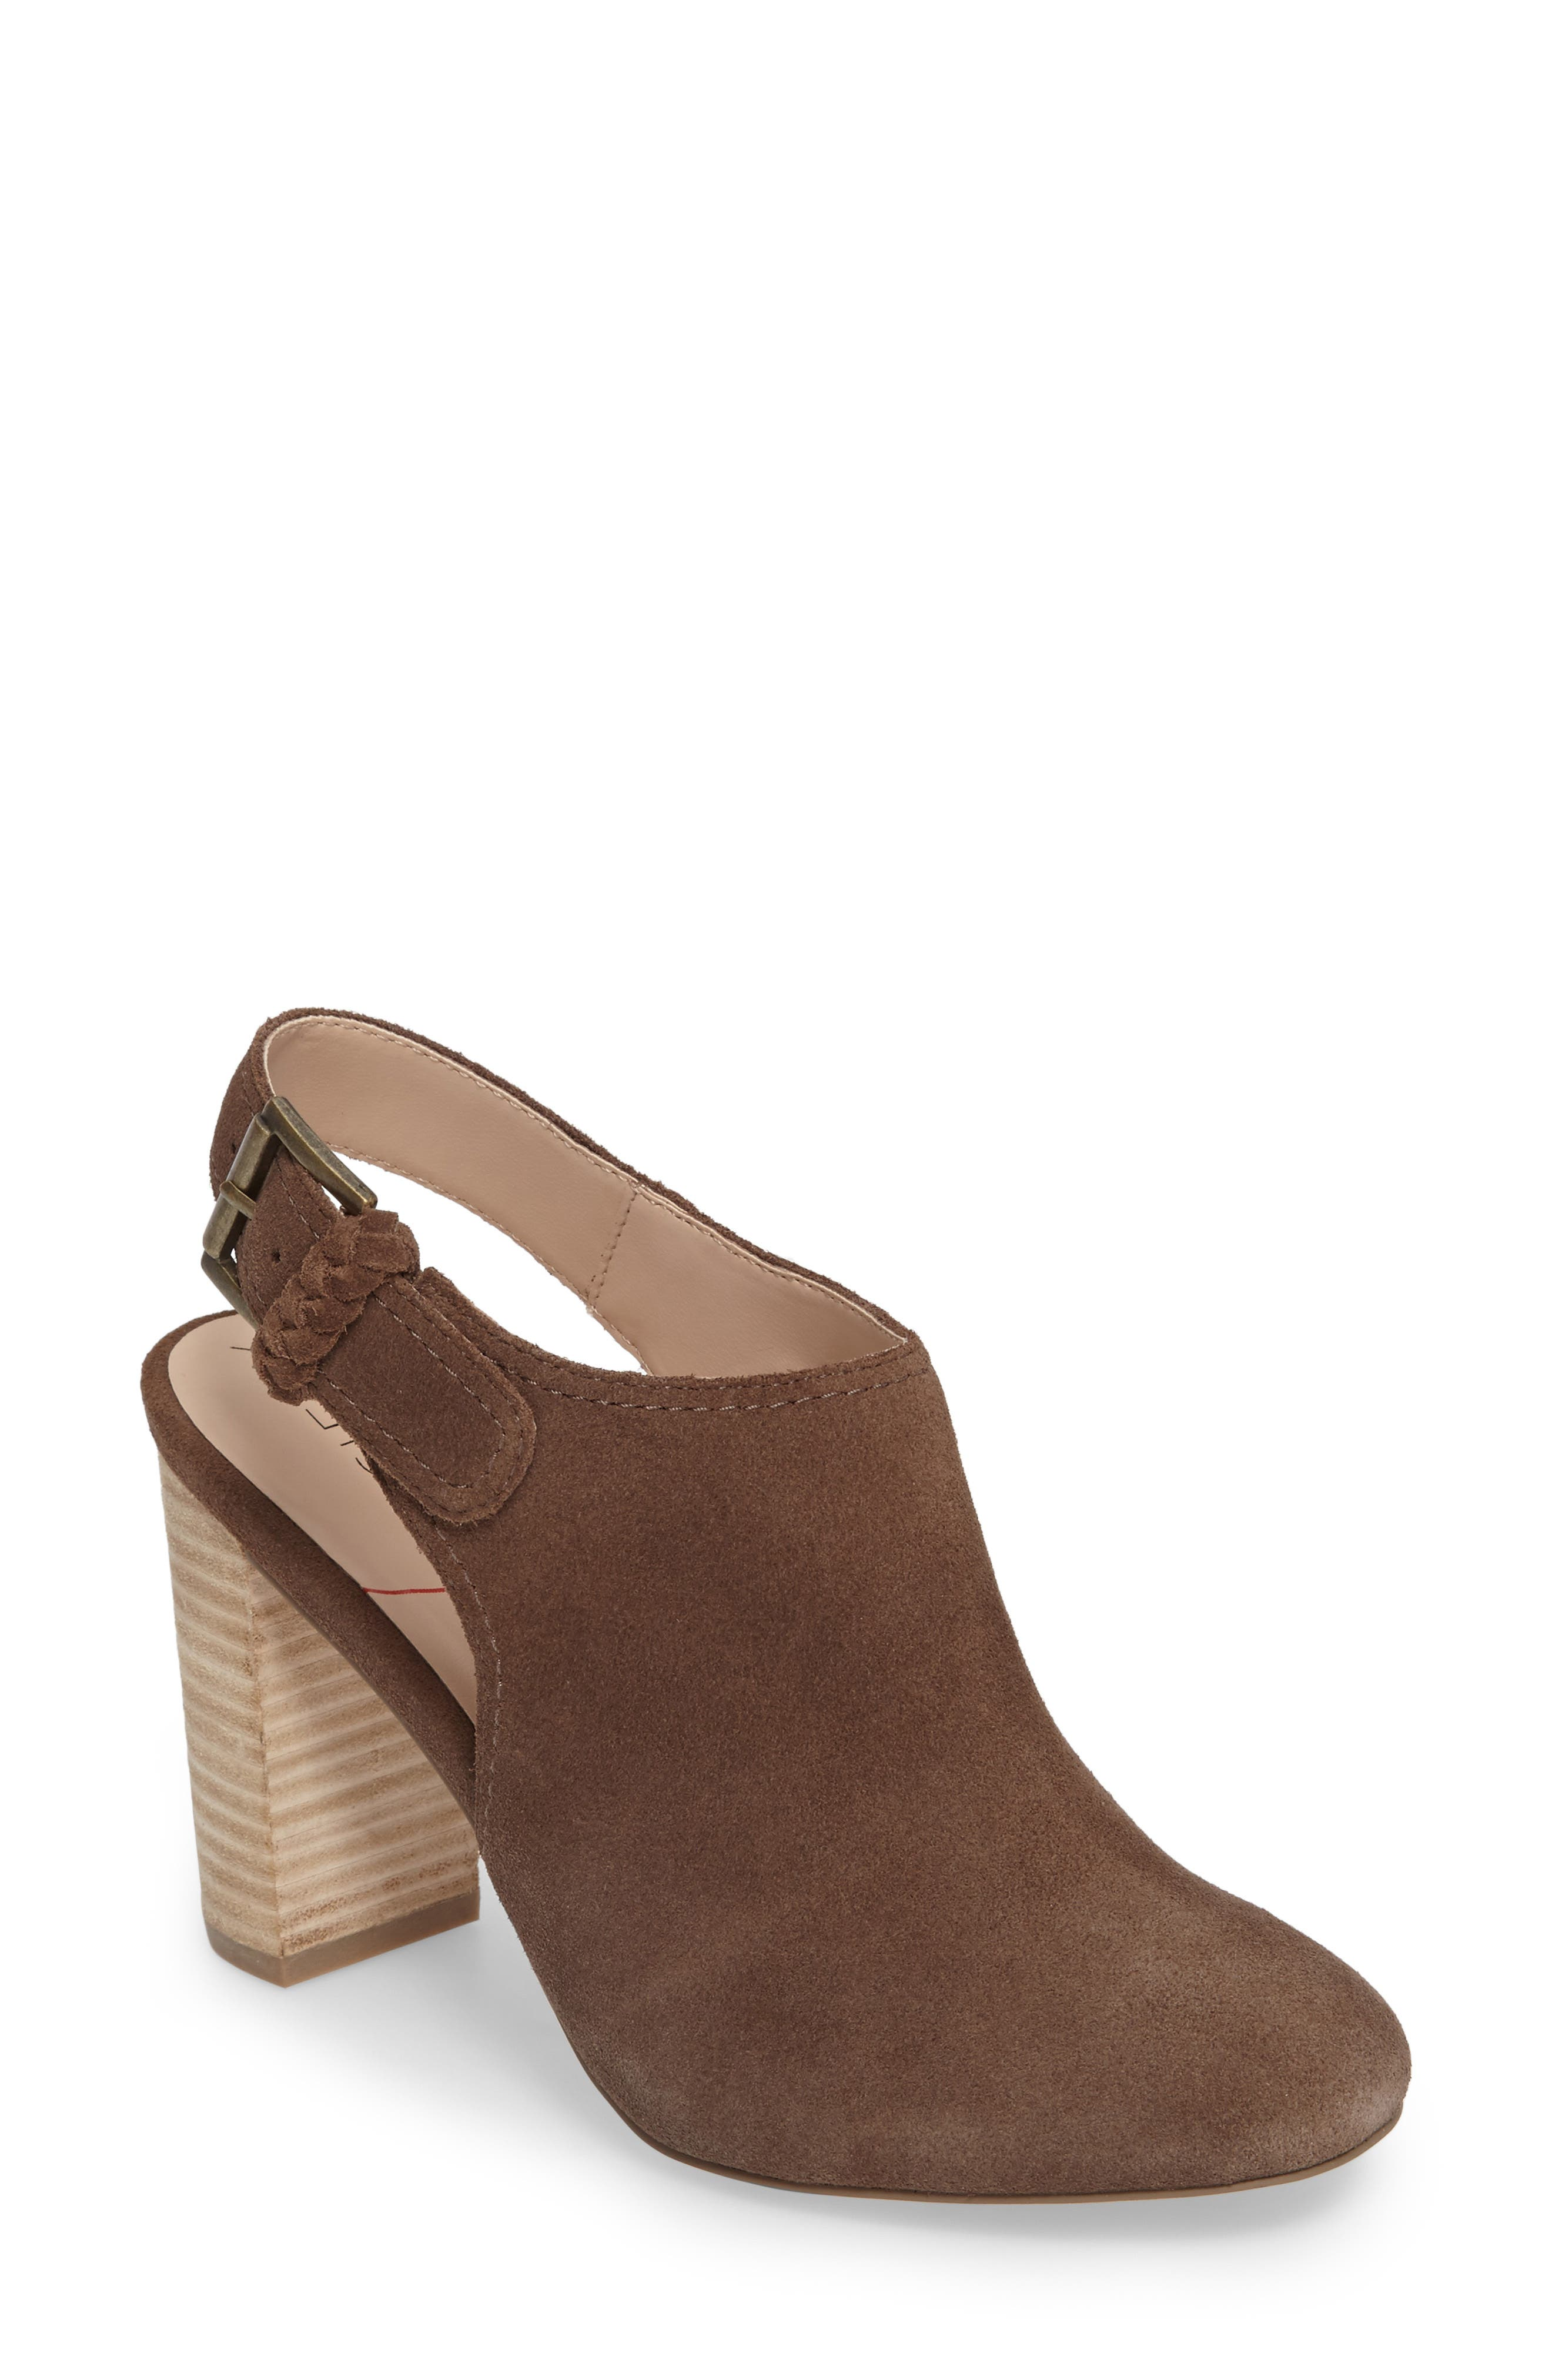 Apollo Slingback Bootie,                             Main thumbnail 1, color,                             Dark Taupe Suede Suede